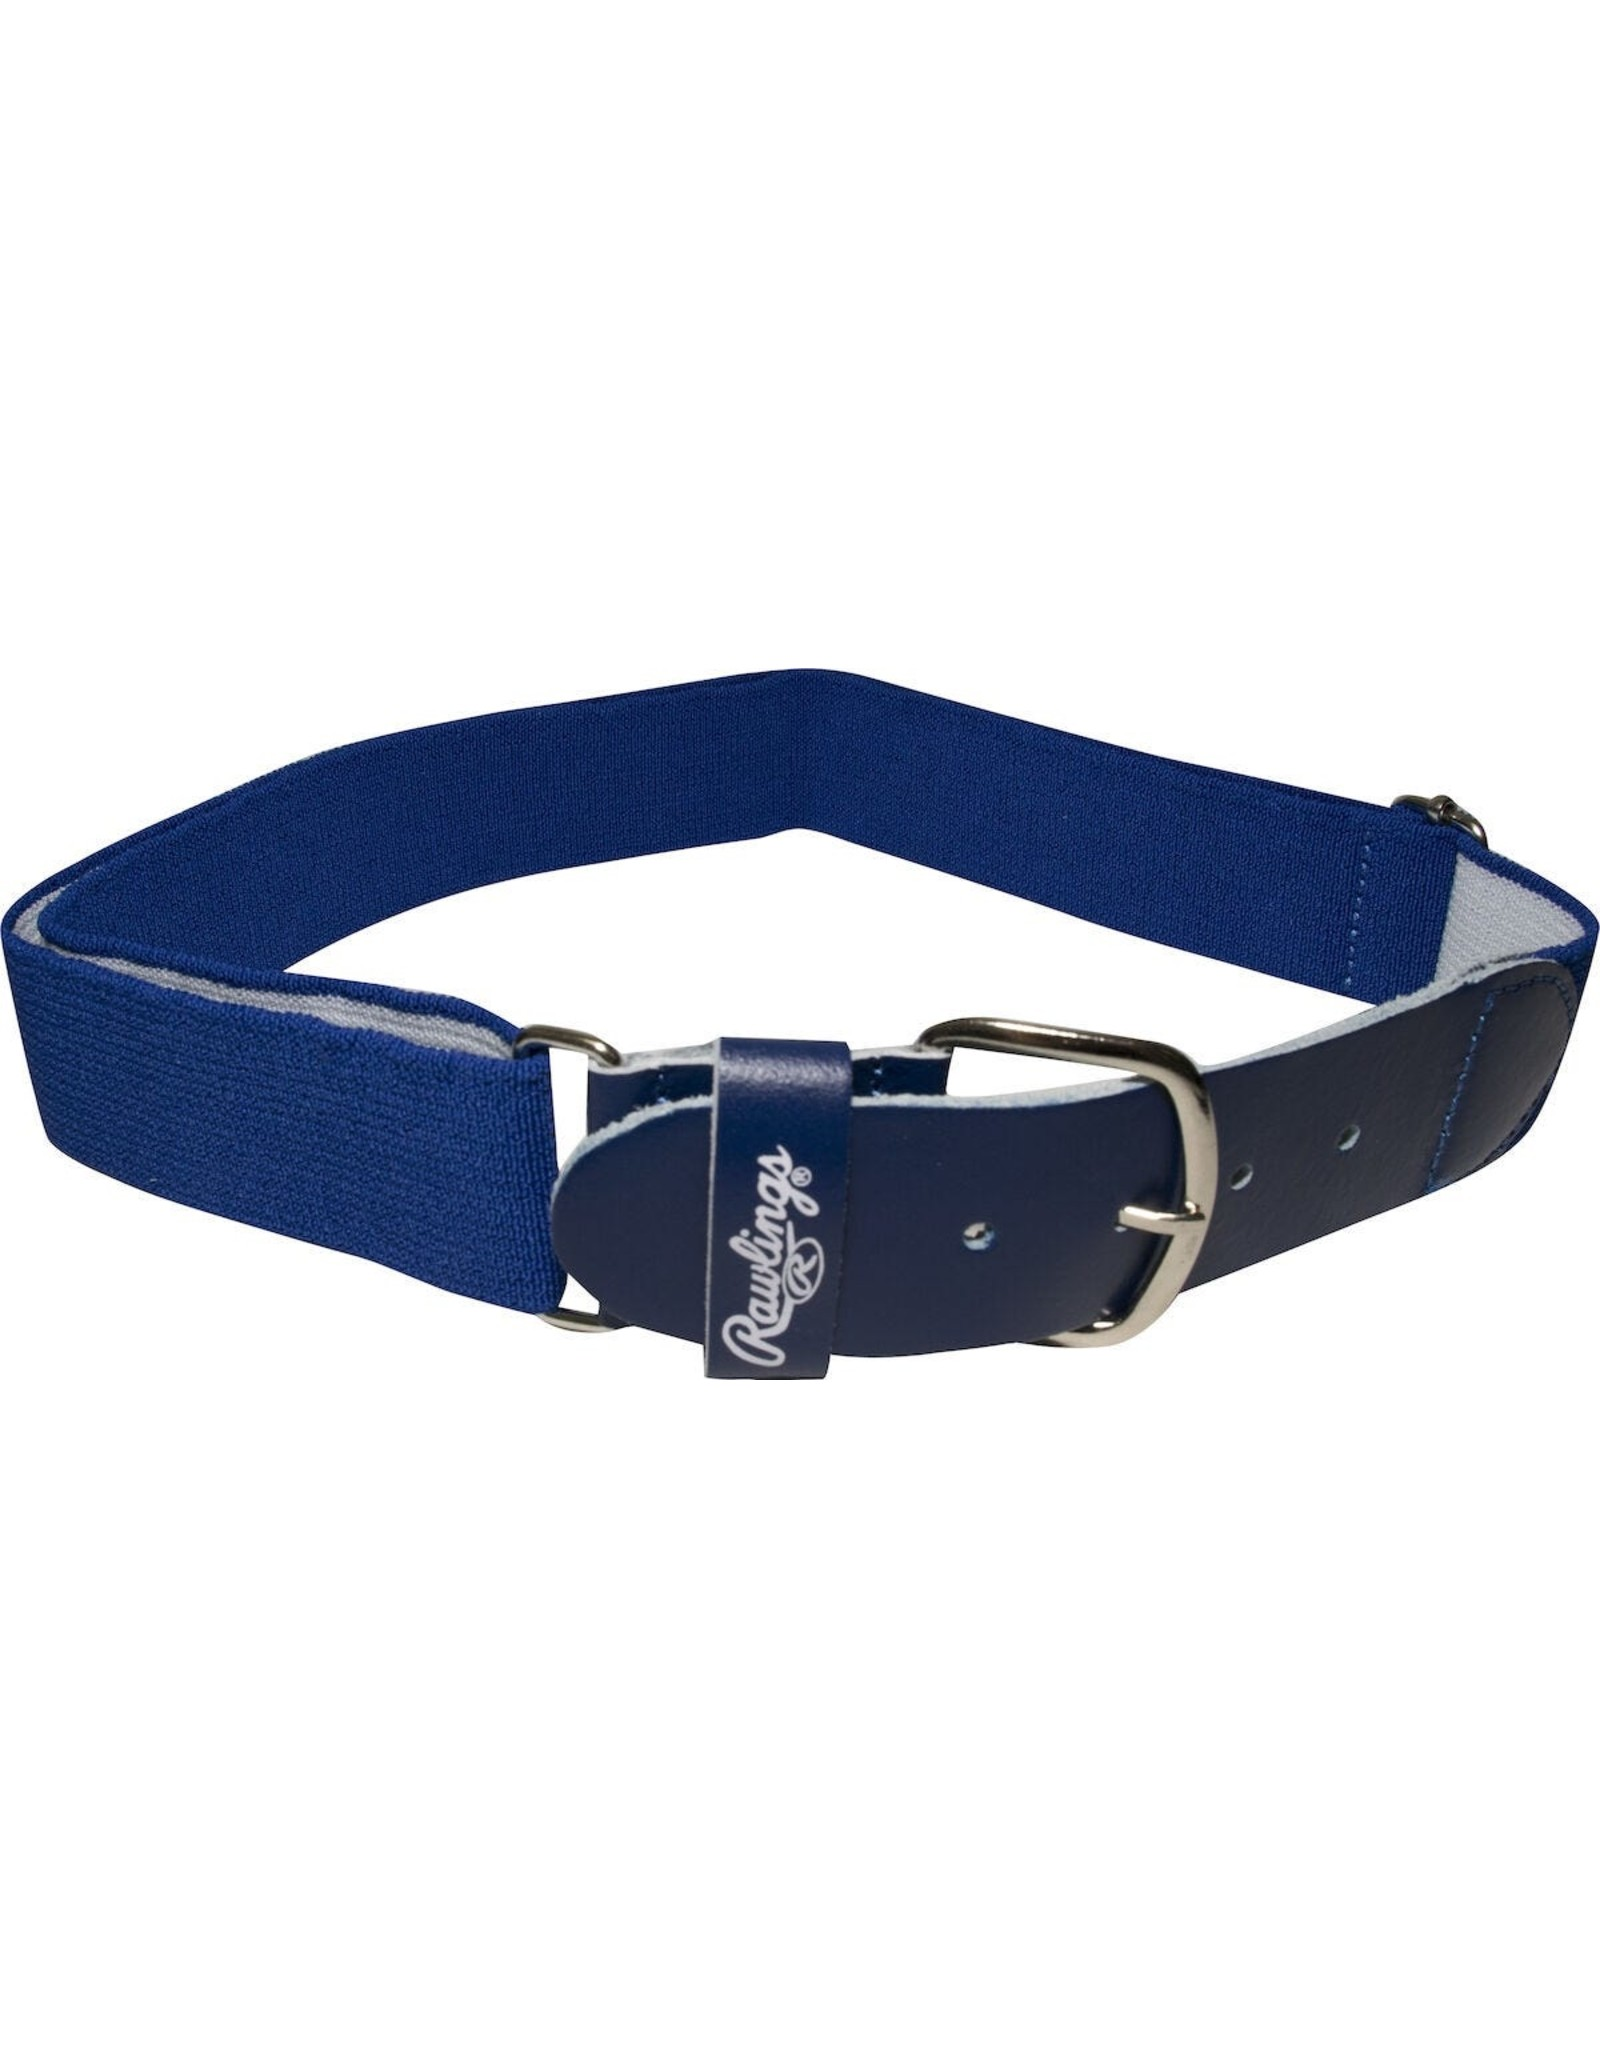 RAWLINGS CEINTURE BASEBALL RAWLINGS